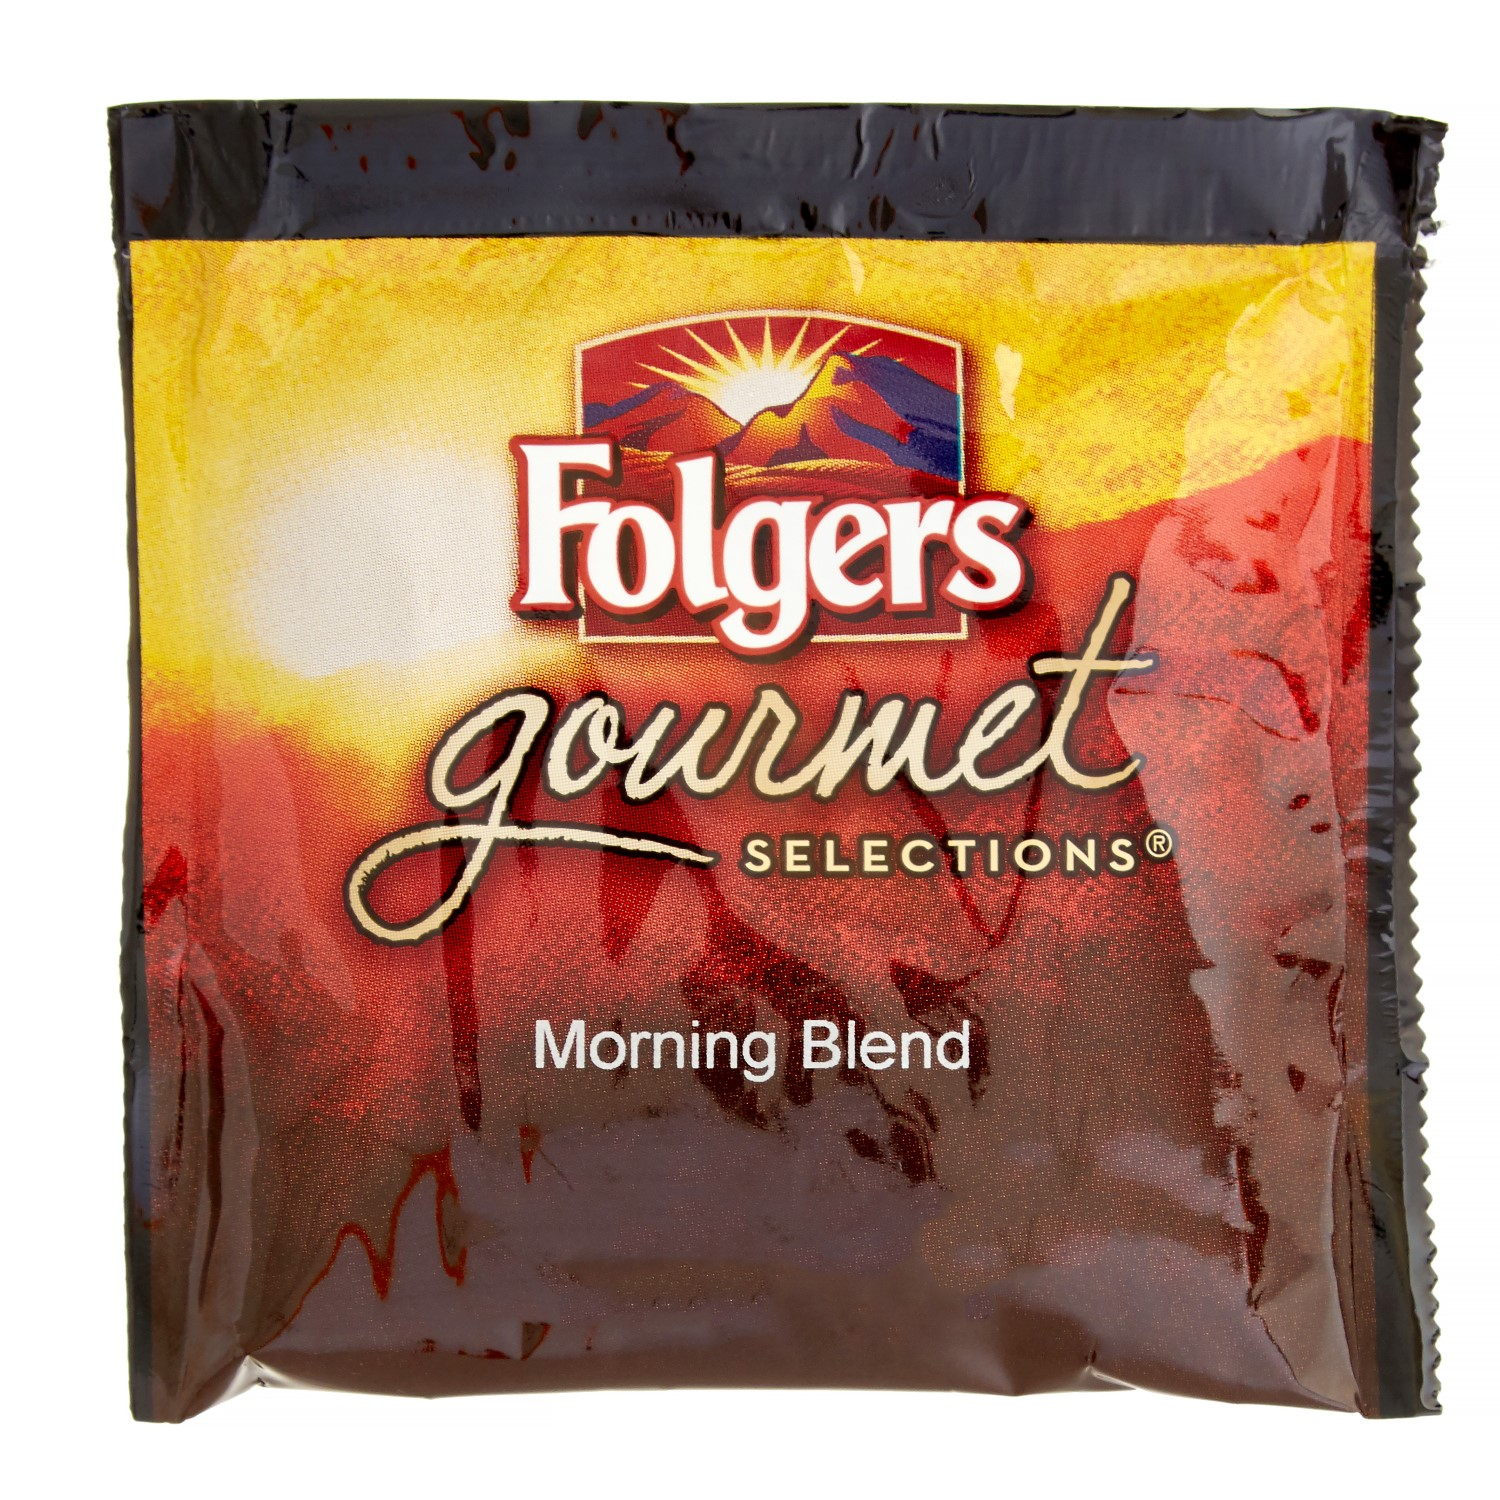 Folgers Ground Coffee, Gourmet Selections Morning Blend, 18 Ct